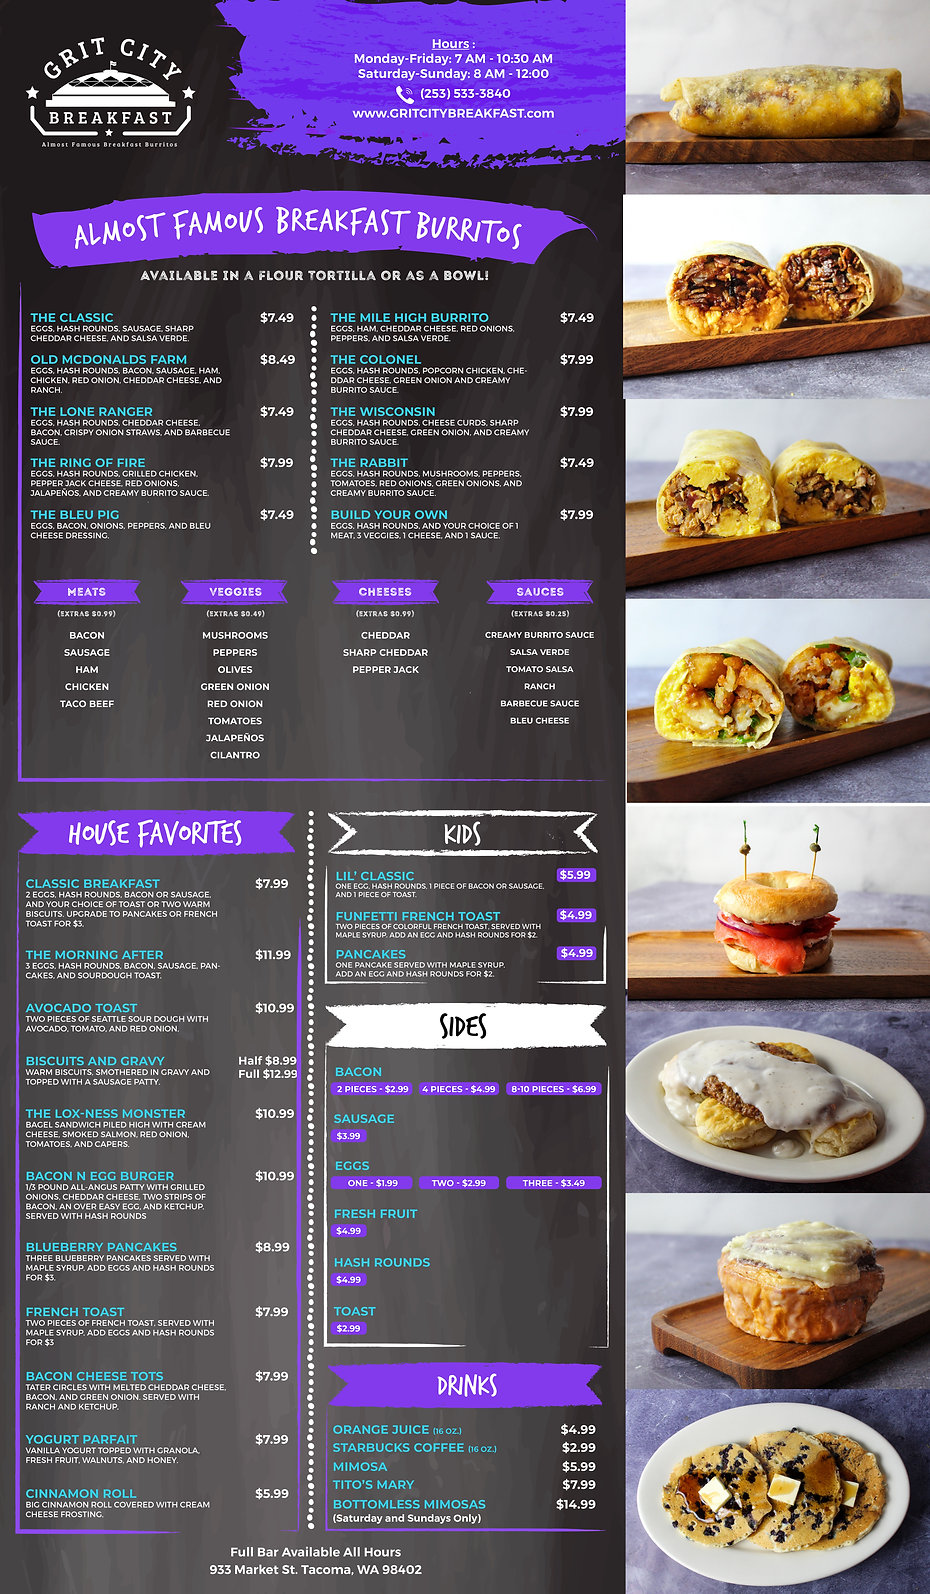 Grit City Menu and Pictures copy.jpg